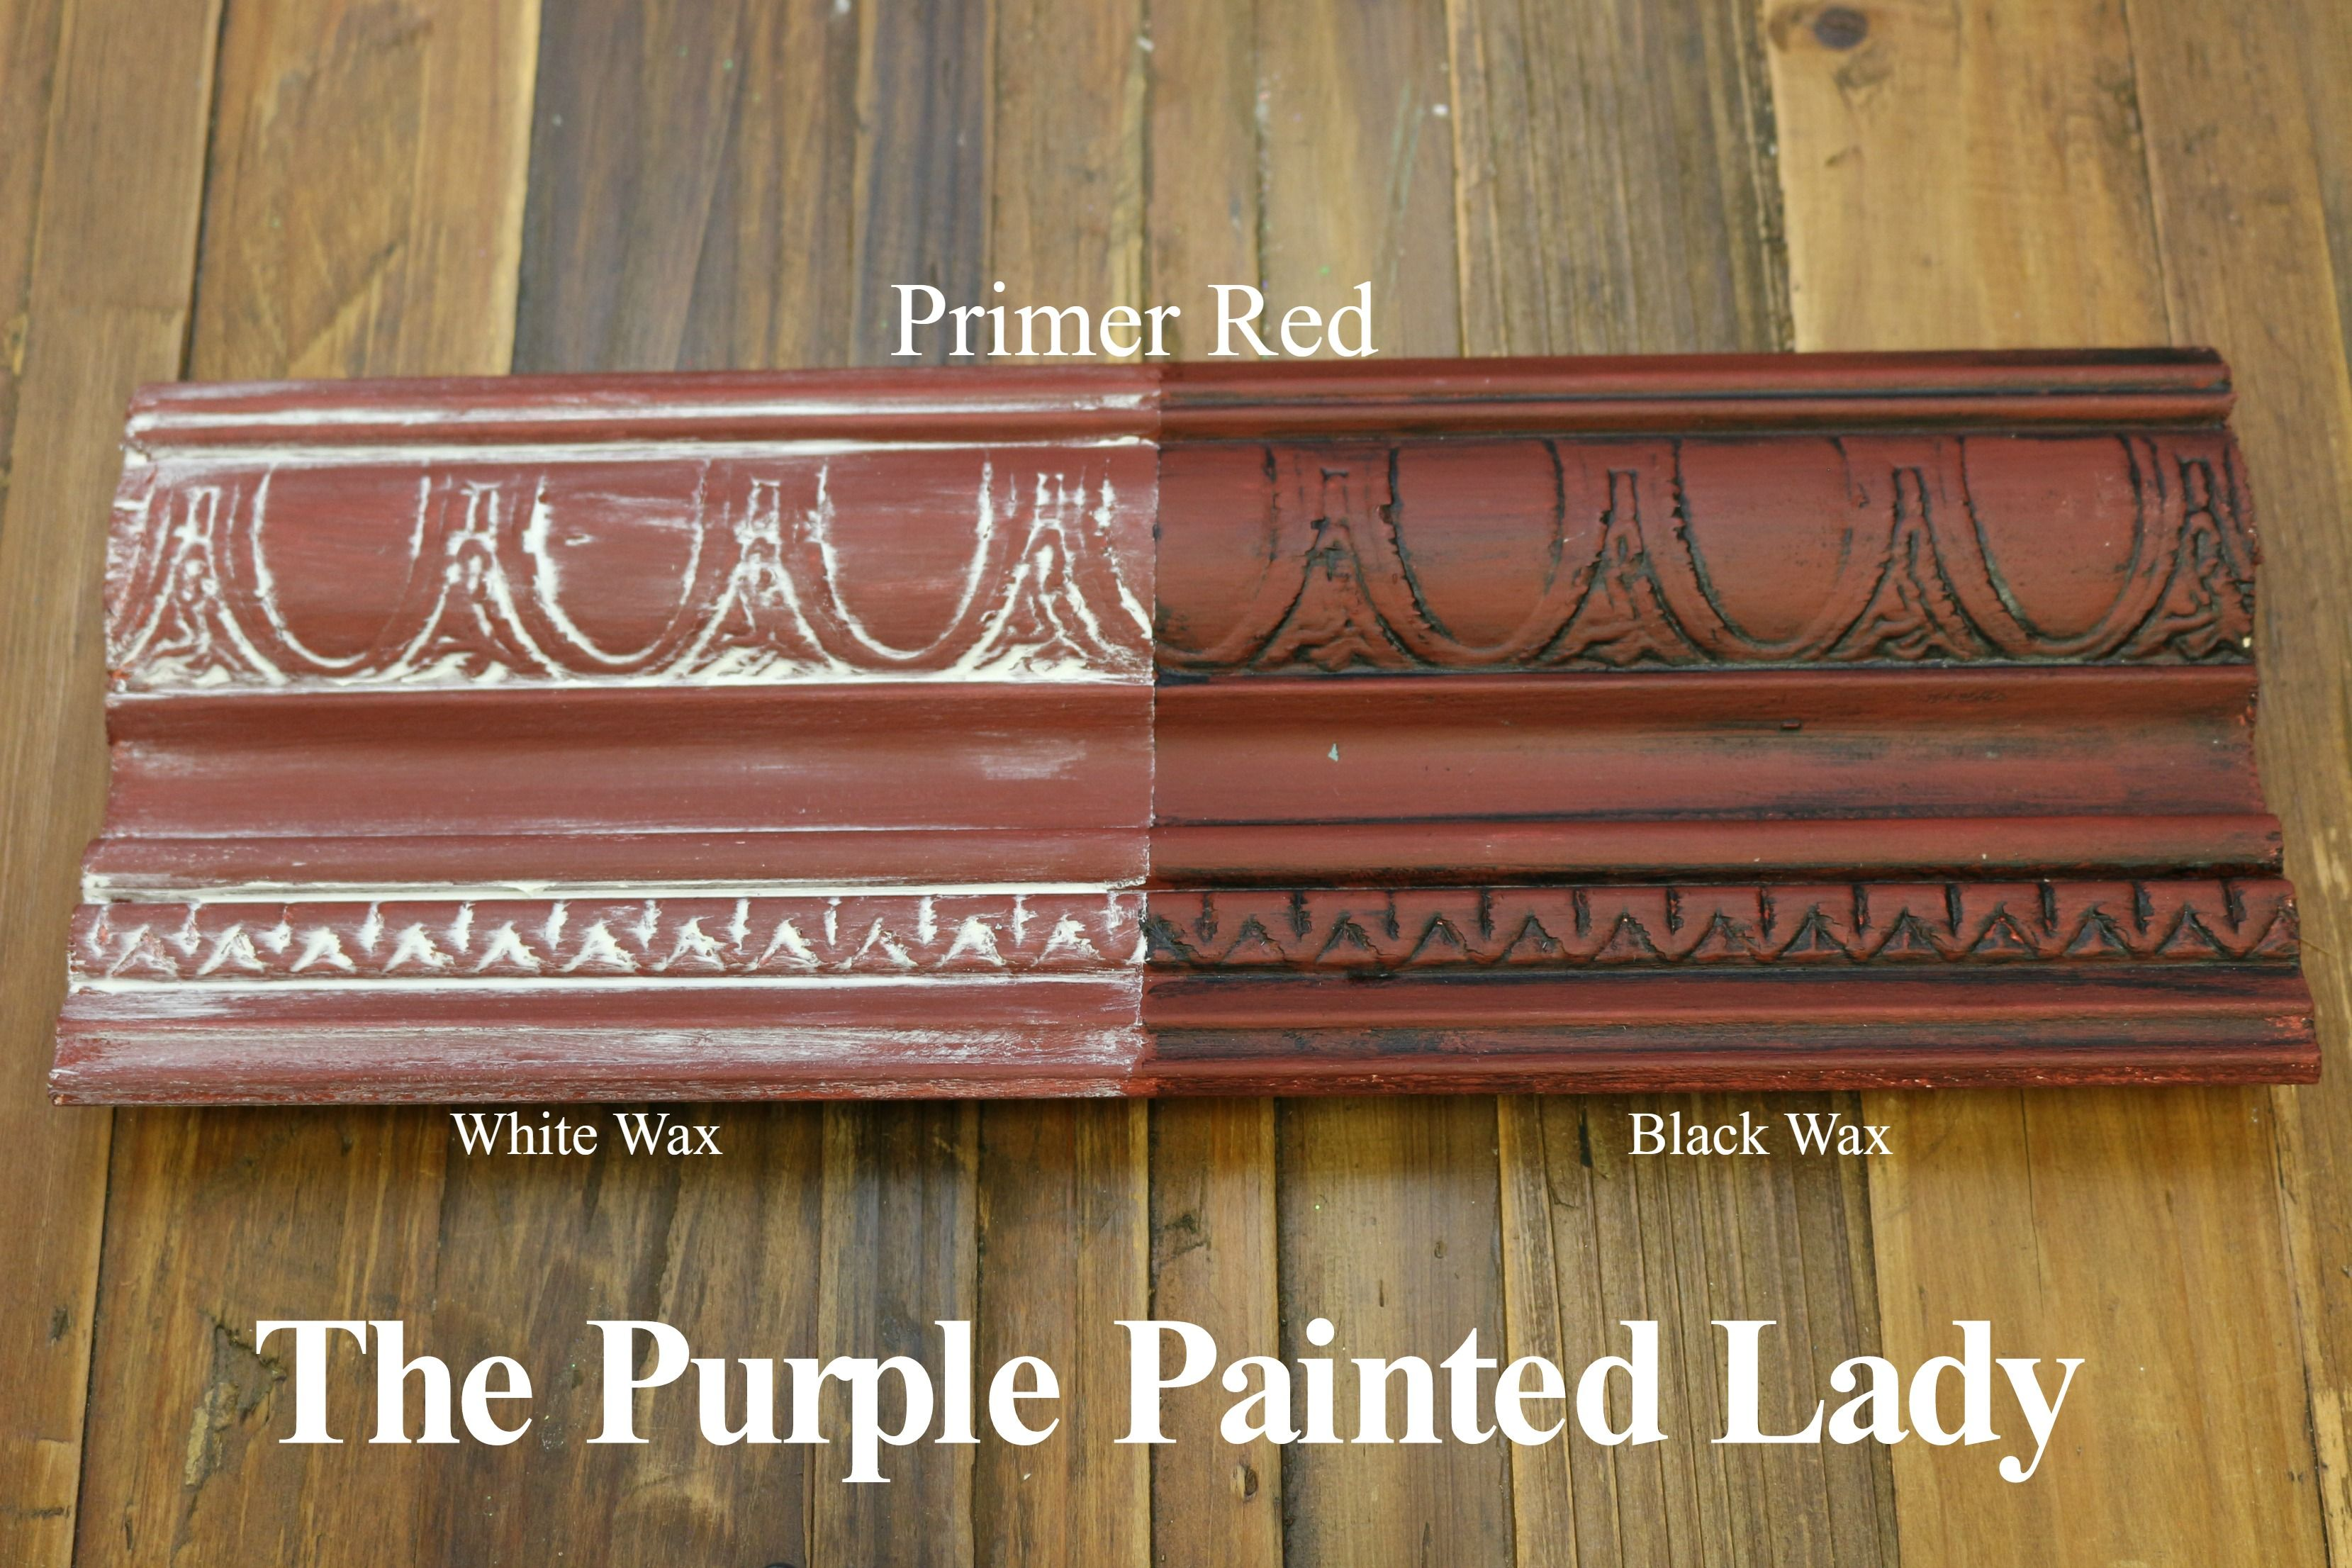 The Purple Painted Lady Two Coats Of Primer Red Chalk Paint By Annie Sloan Then One Coat Red Chalk Paint Annie Sloan Chalk Paint Colors Chalk Paint Colors